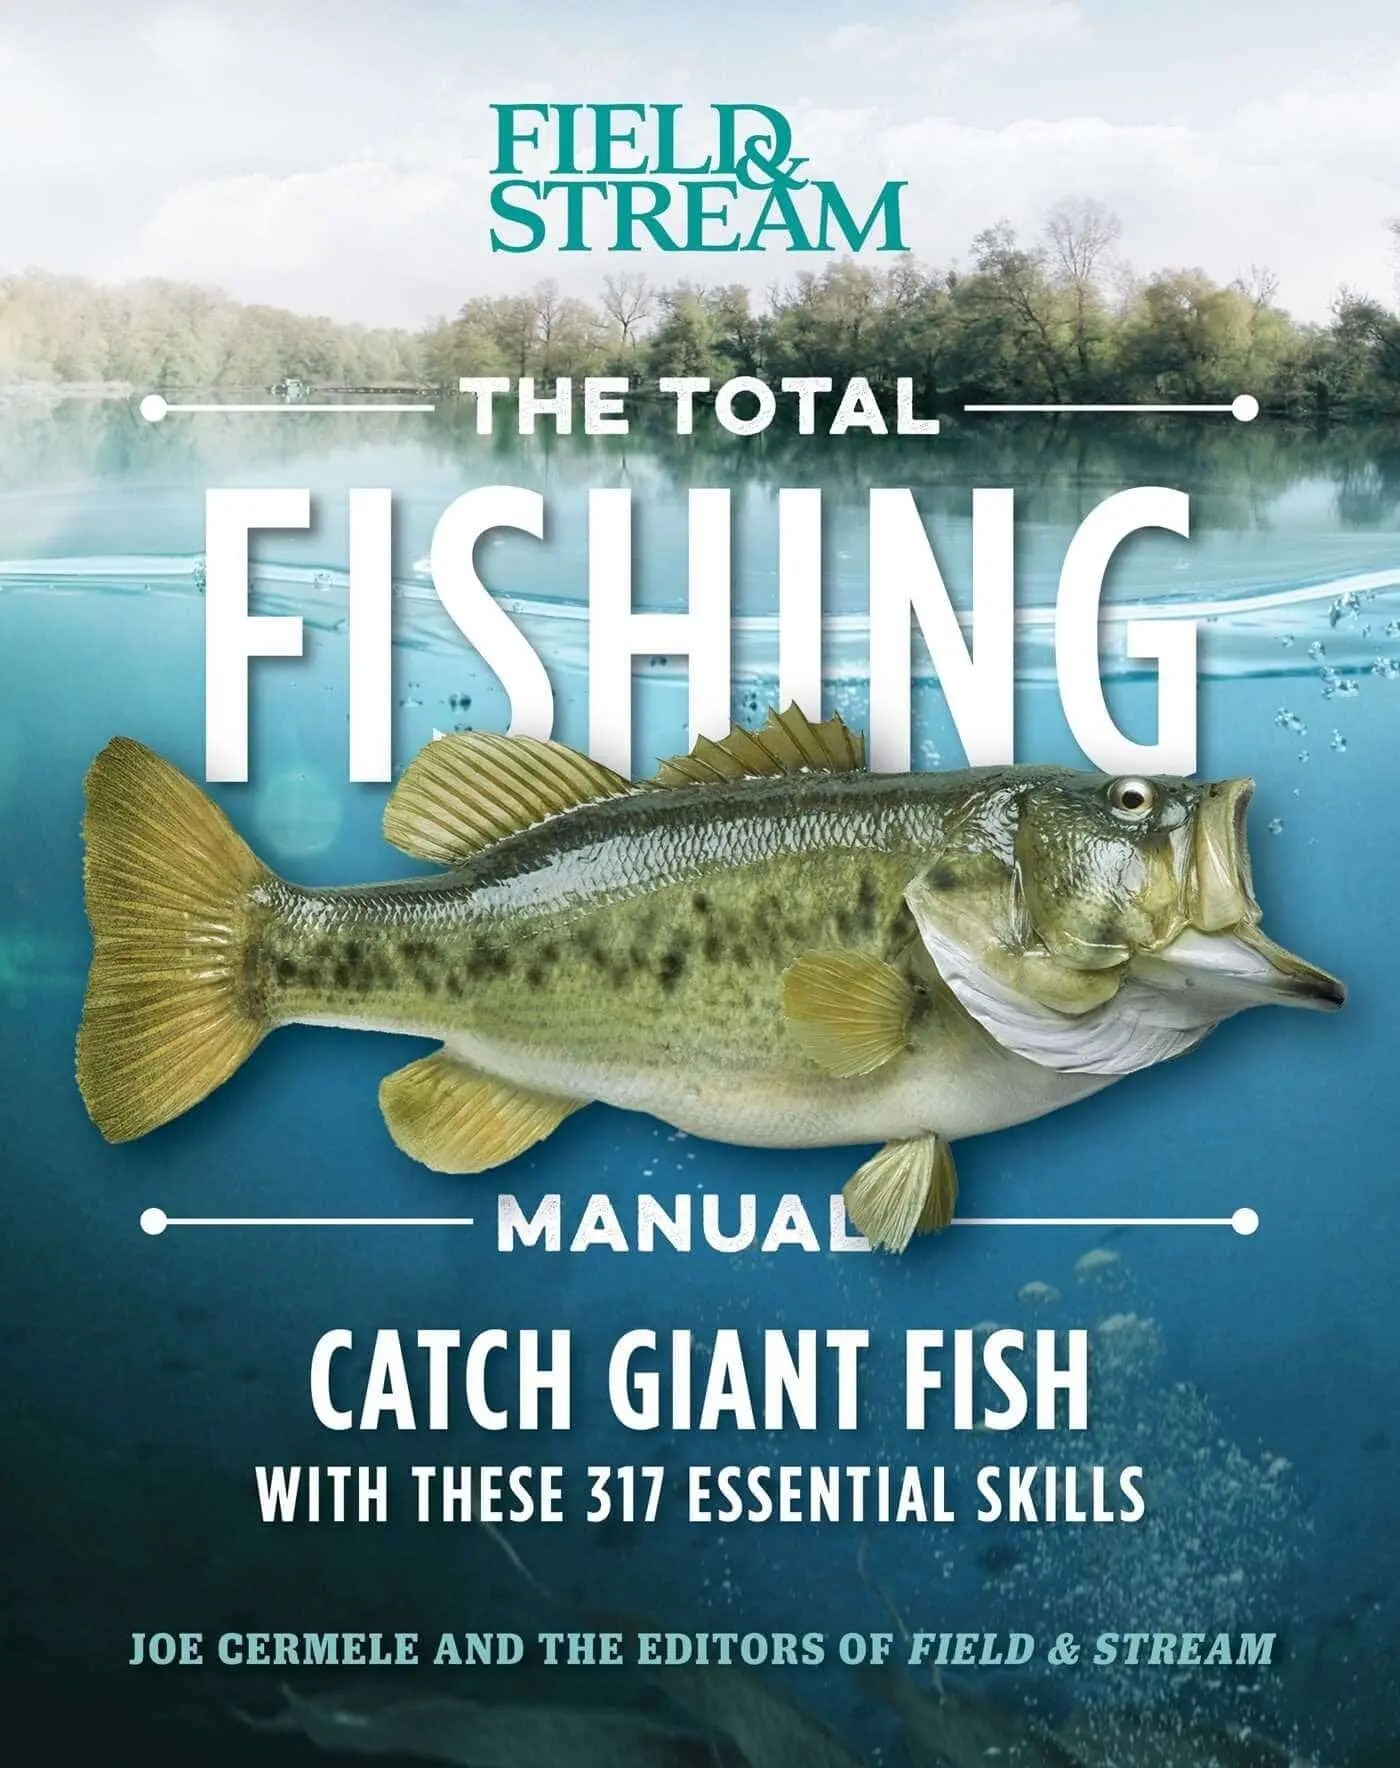 The Total Fishing Manual (Paperback Edition)317 Essential Fishing